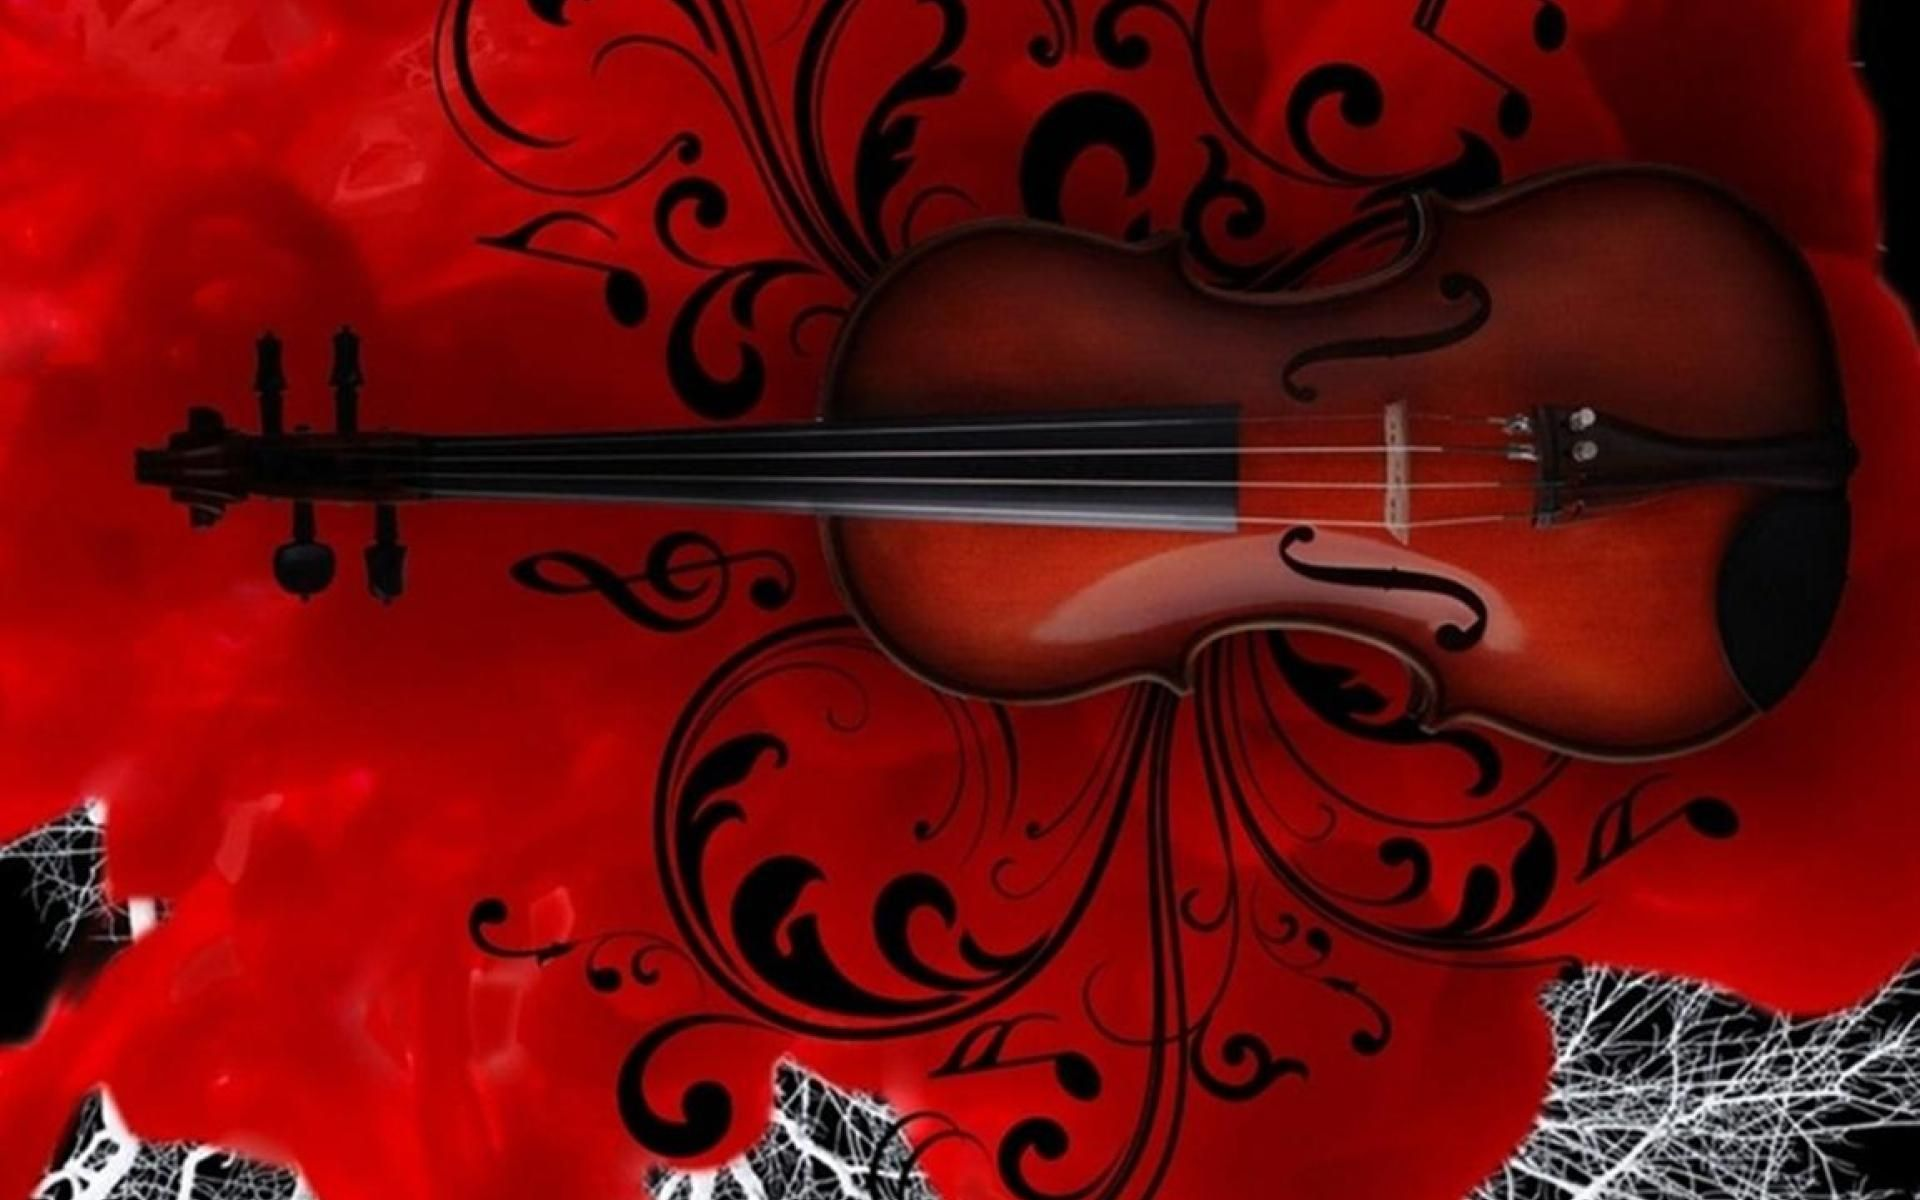 Beautiful Violin Wallpaper Mobile 115 1920x1200 Px 15452 Kb Music